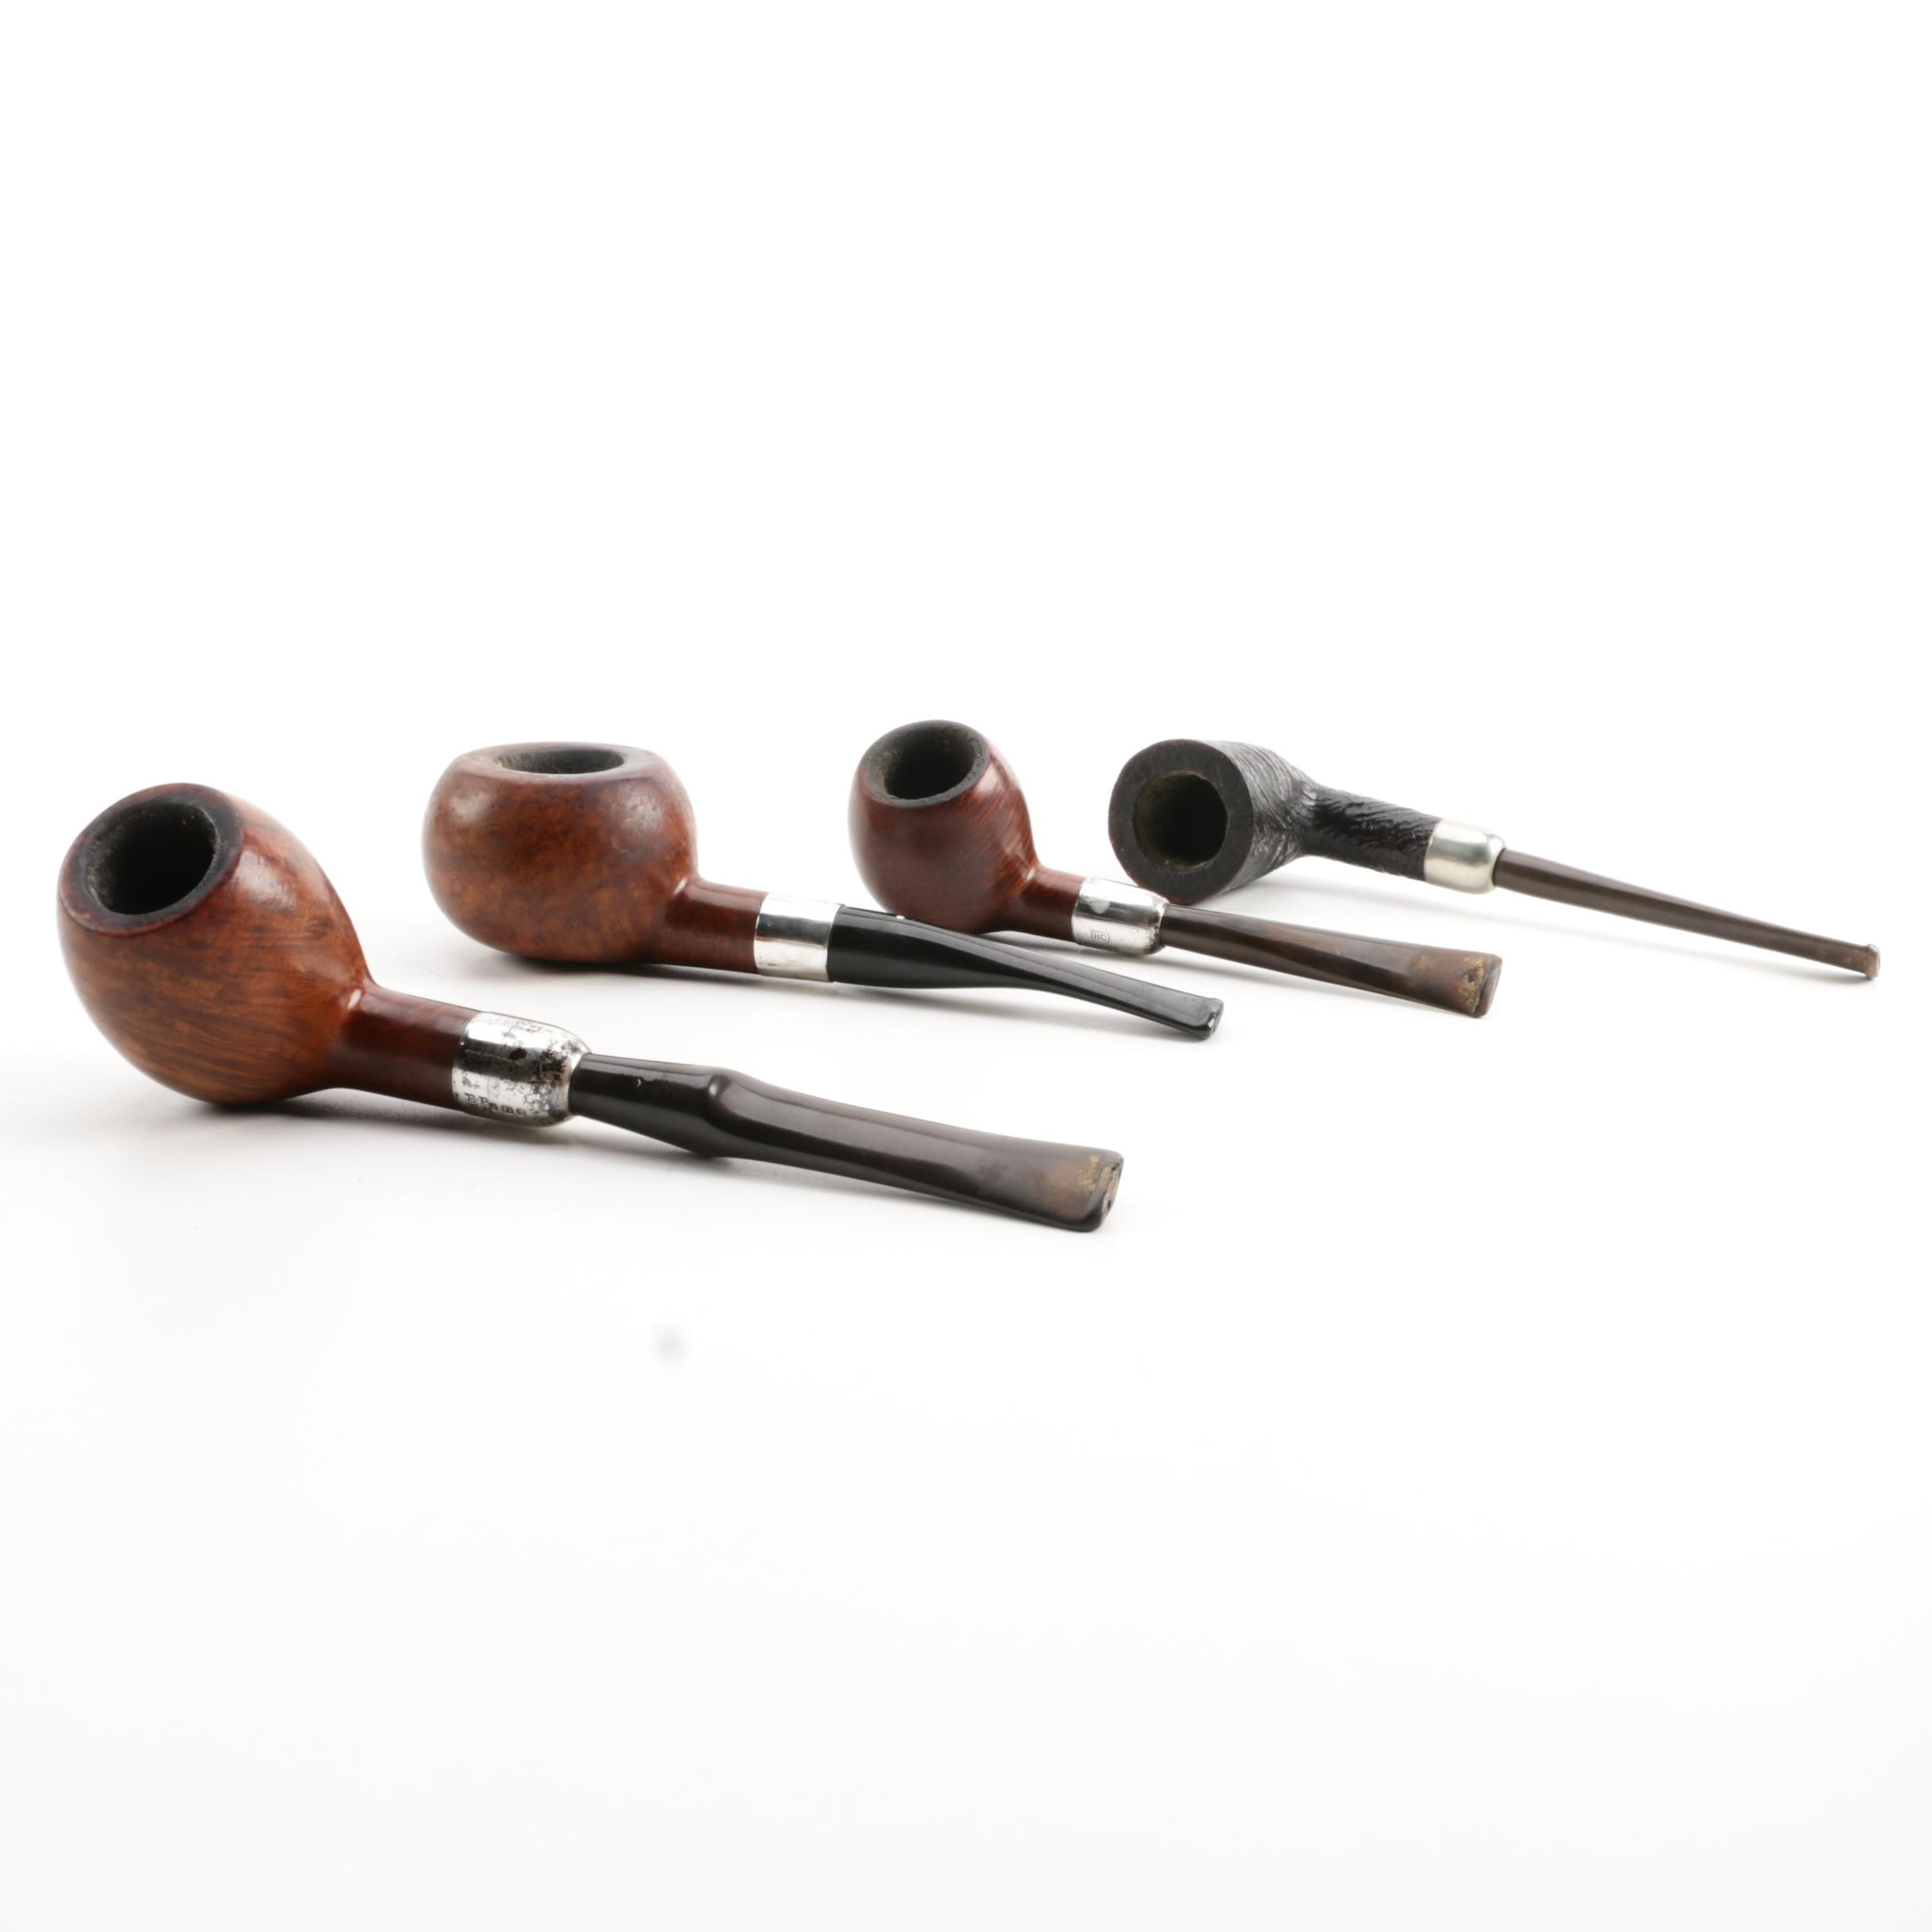 Comoy's De Luxe Pipe with Other Briar Wood and Silver Pipes